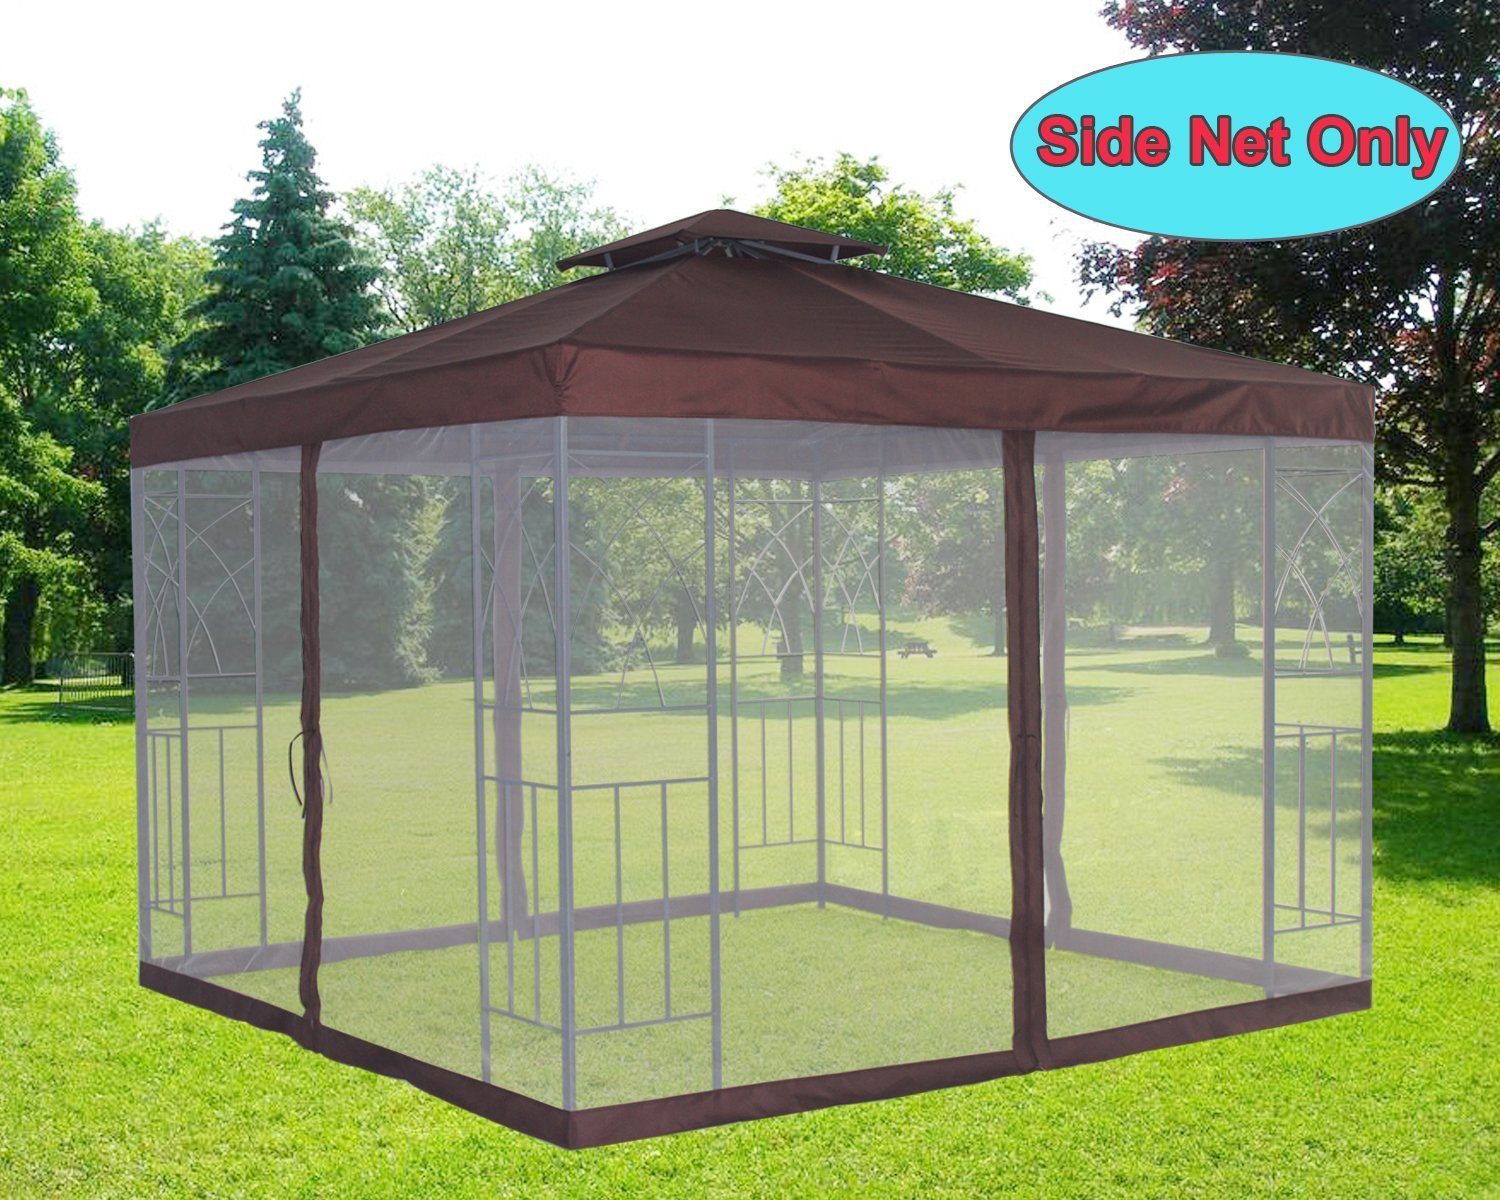 Greenbay Outdoor Garden Pavilion Tent Mosquito Side Net Curtains Cover Bug Netting Cover Replacement Metal Gazebo Spare Part Coffee (Side Net Only) Manufactured for Greenbay